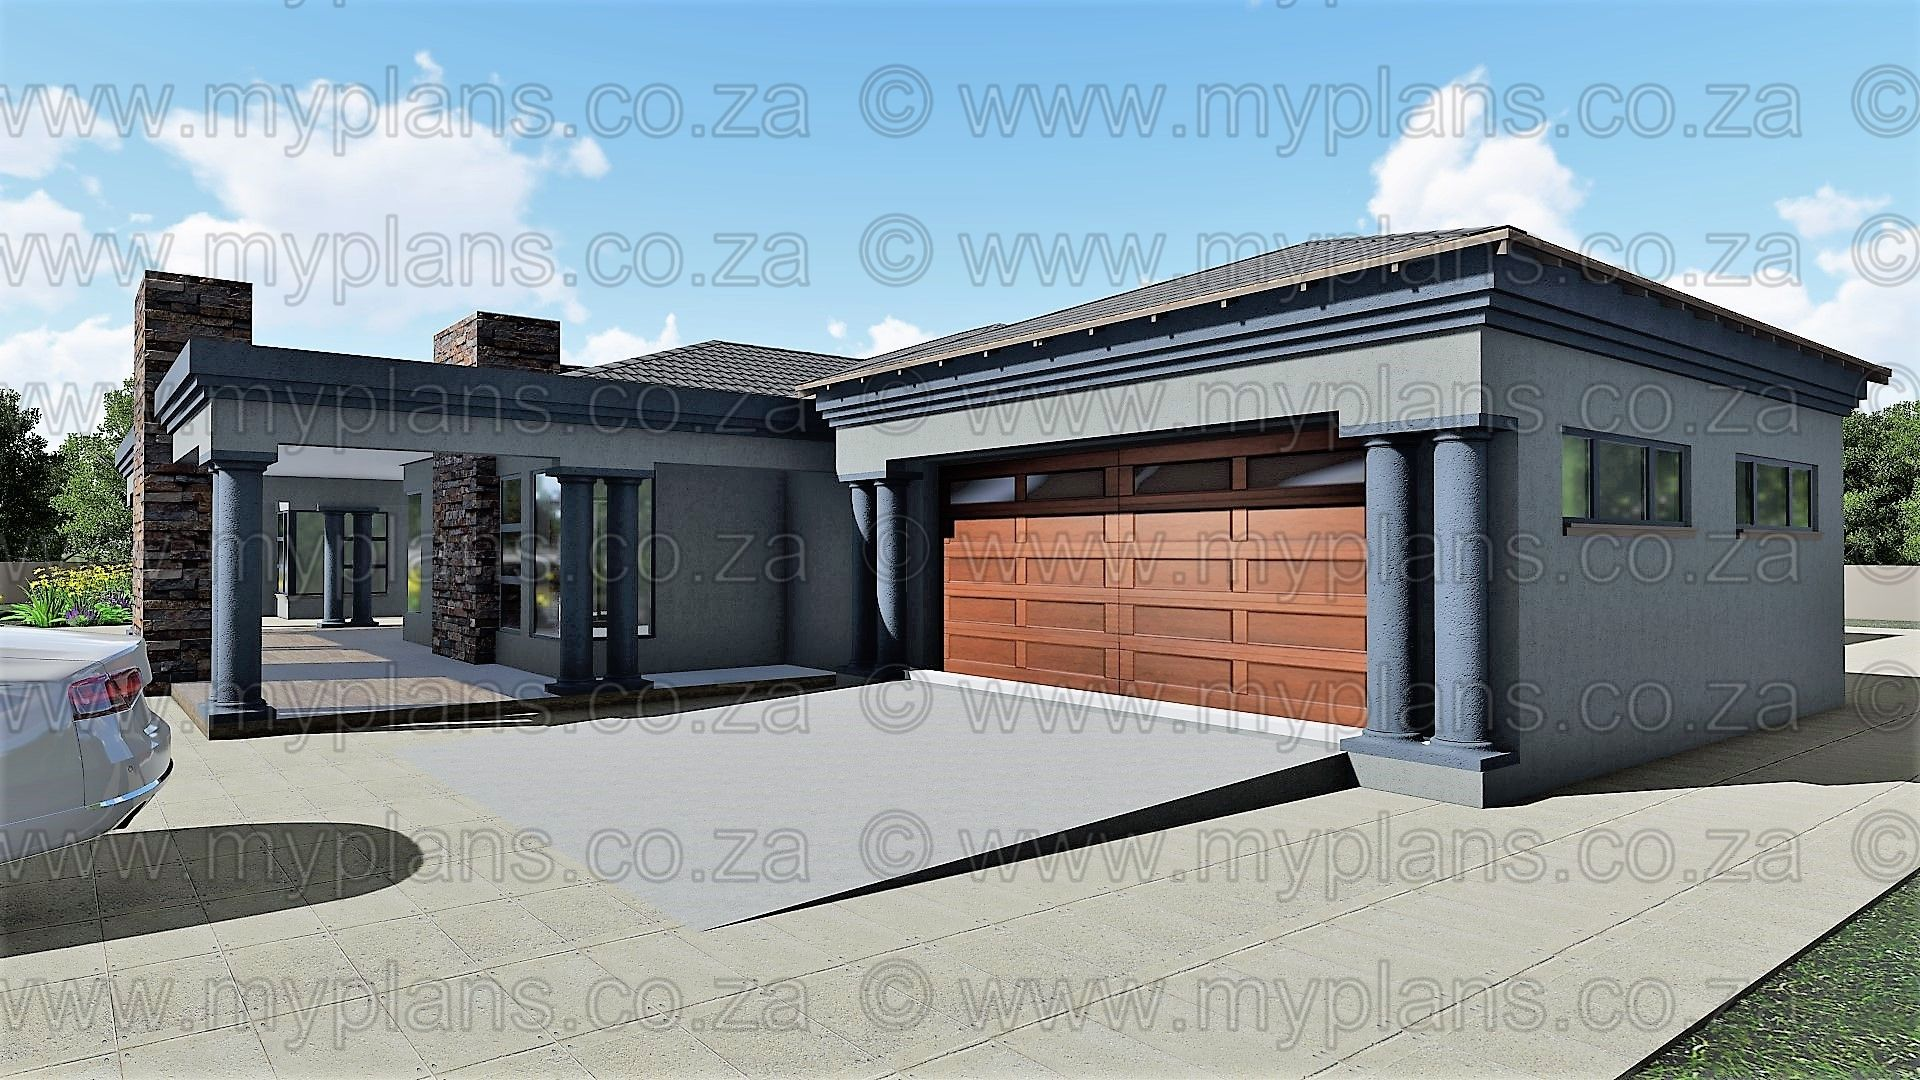 4 Bedroom House Plan Mlb 058 1s My Building Plans South Africa House Plans South Africa Tuscan House Plans House Plan Gallery